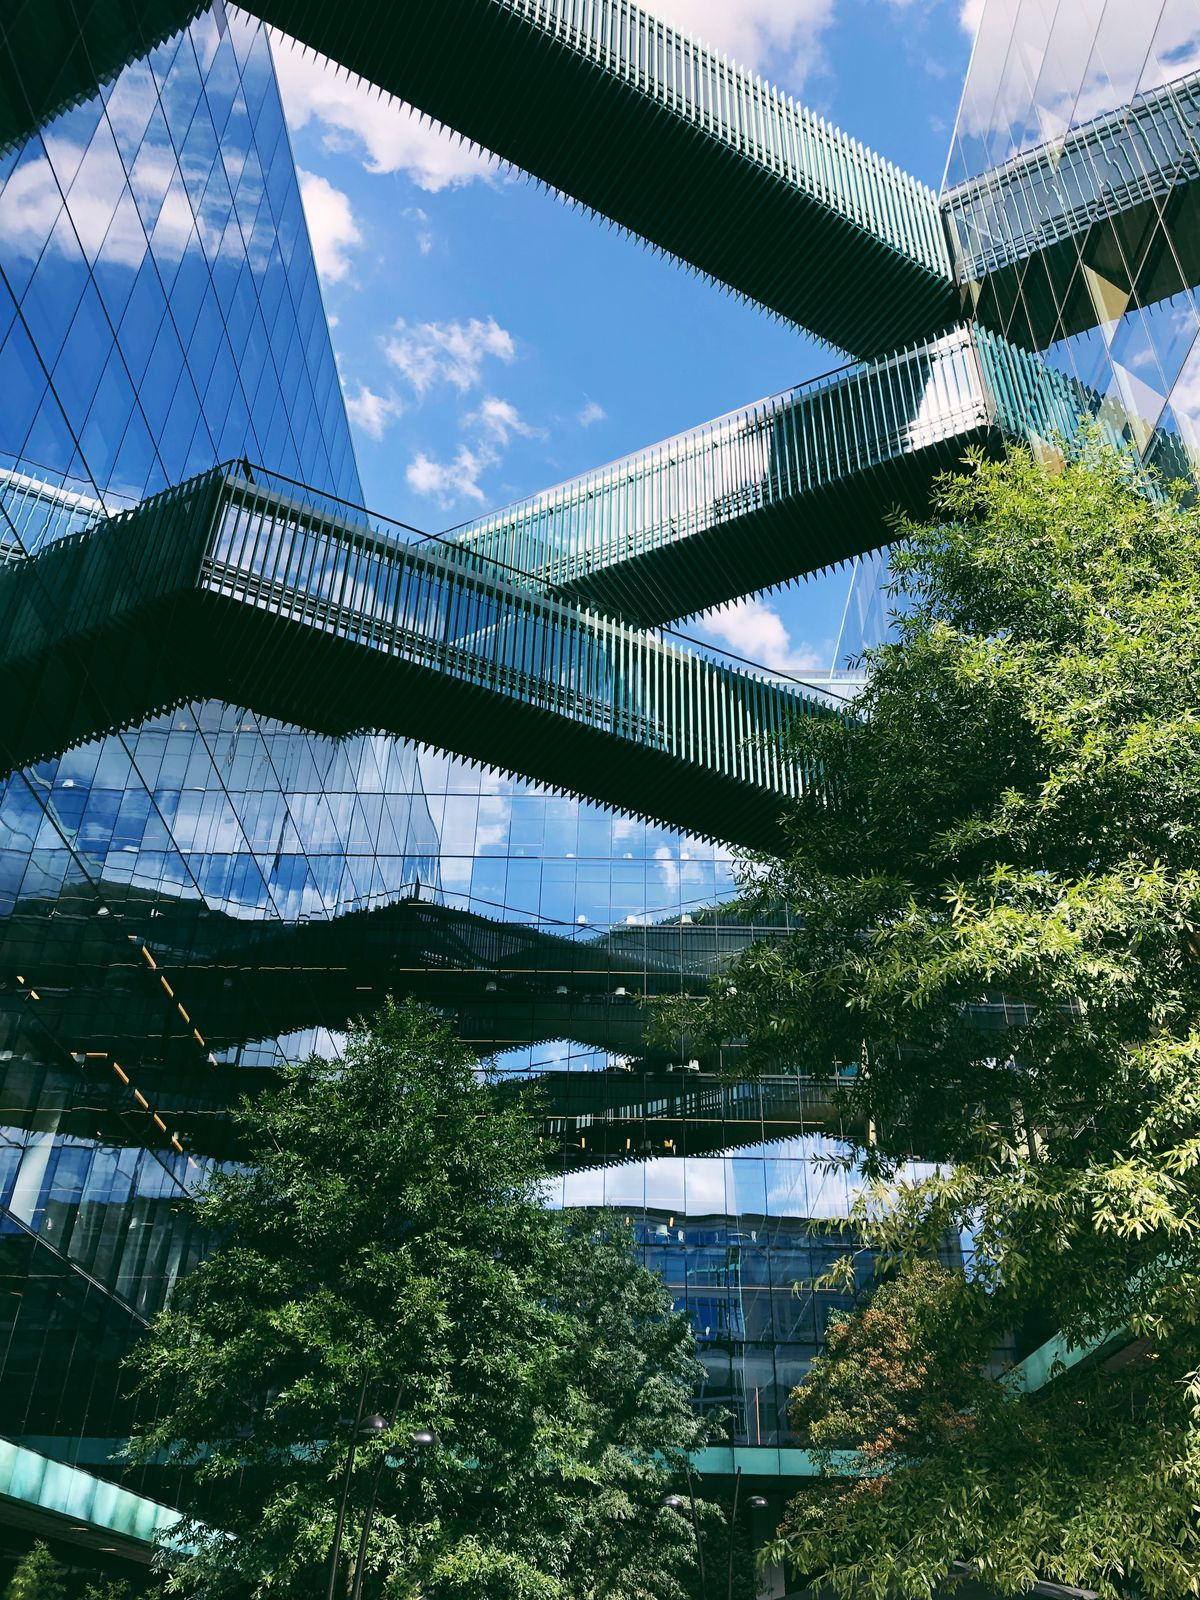 A close-up of an all-glass building with multiple walkways that form a geometric pattern. The building stands high with a group of trees below.